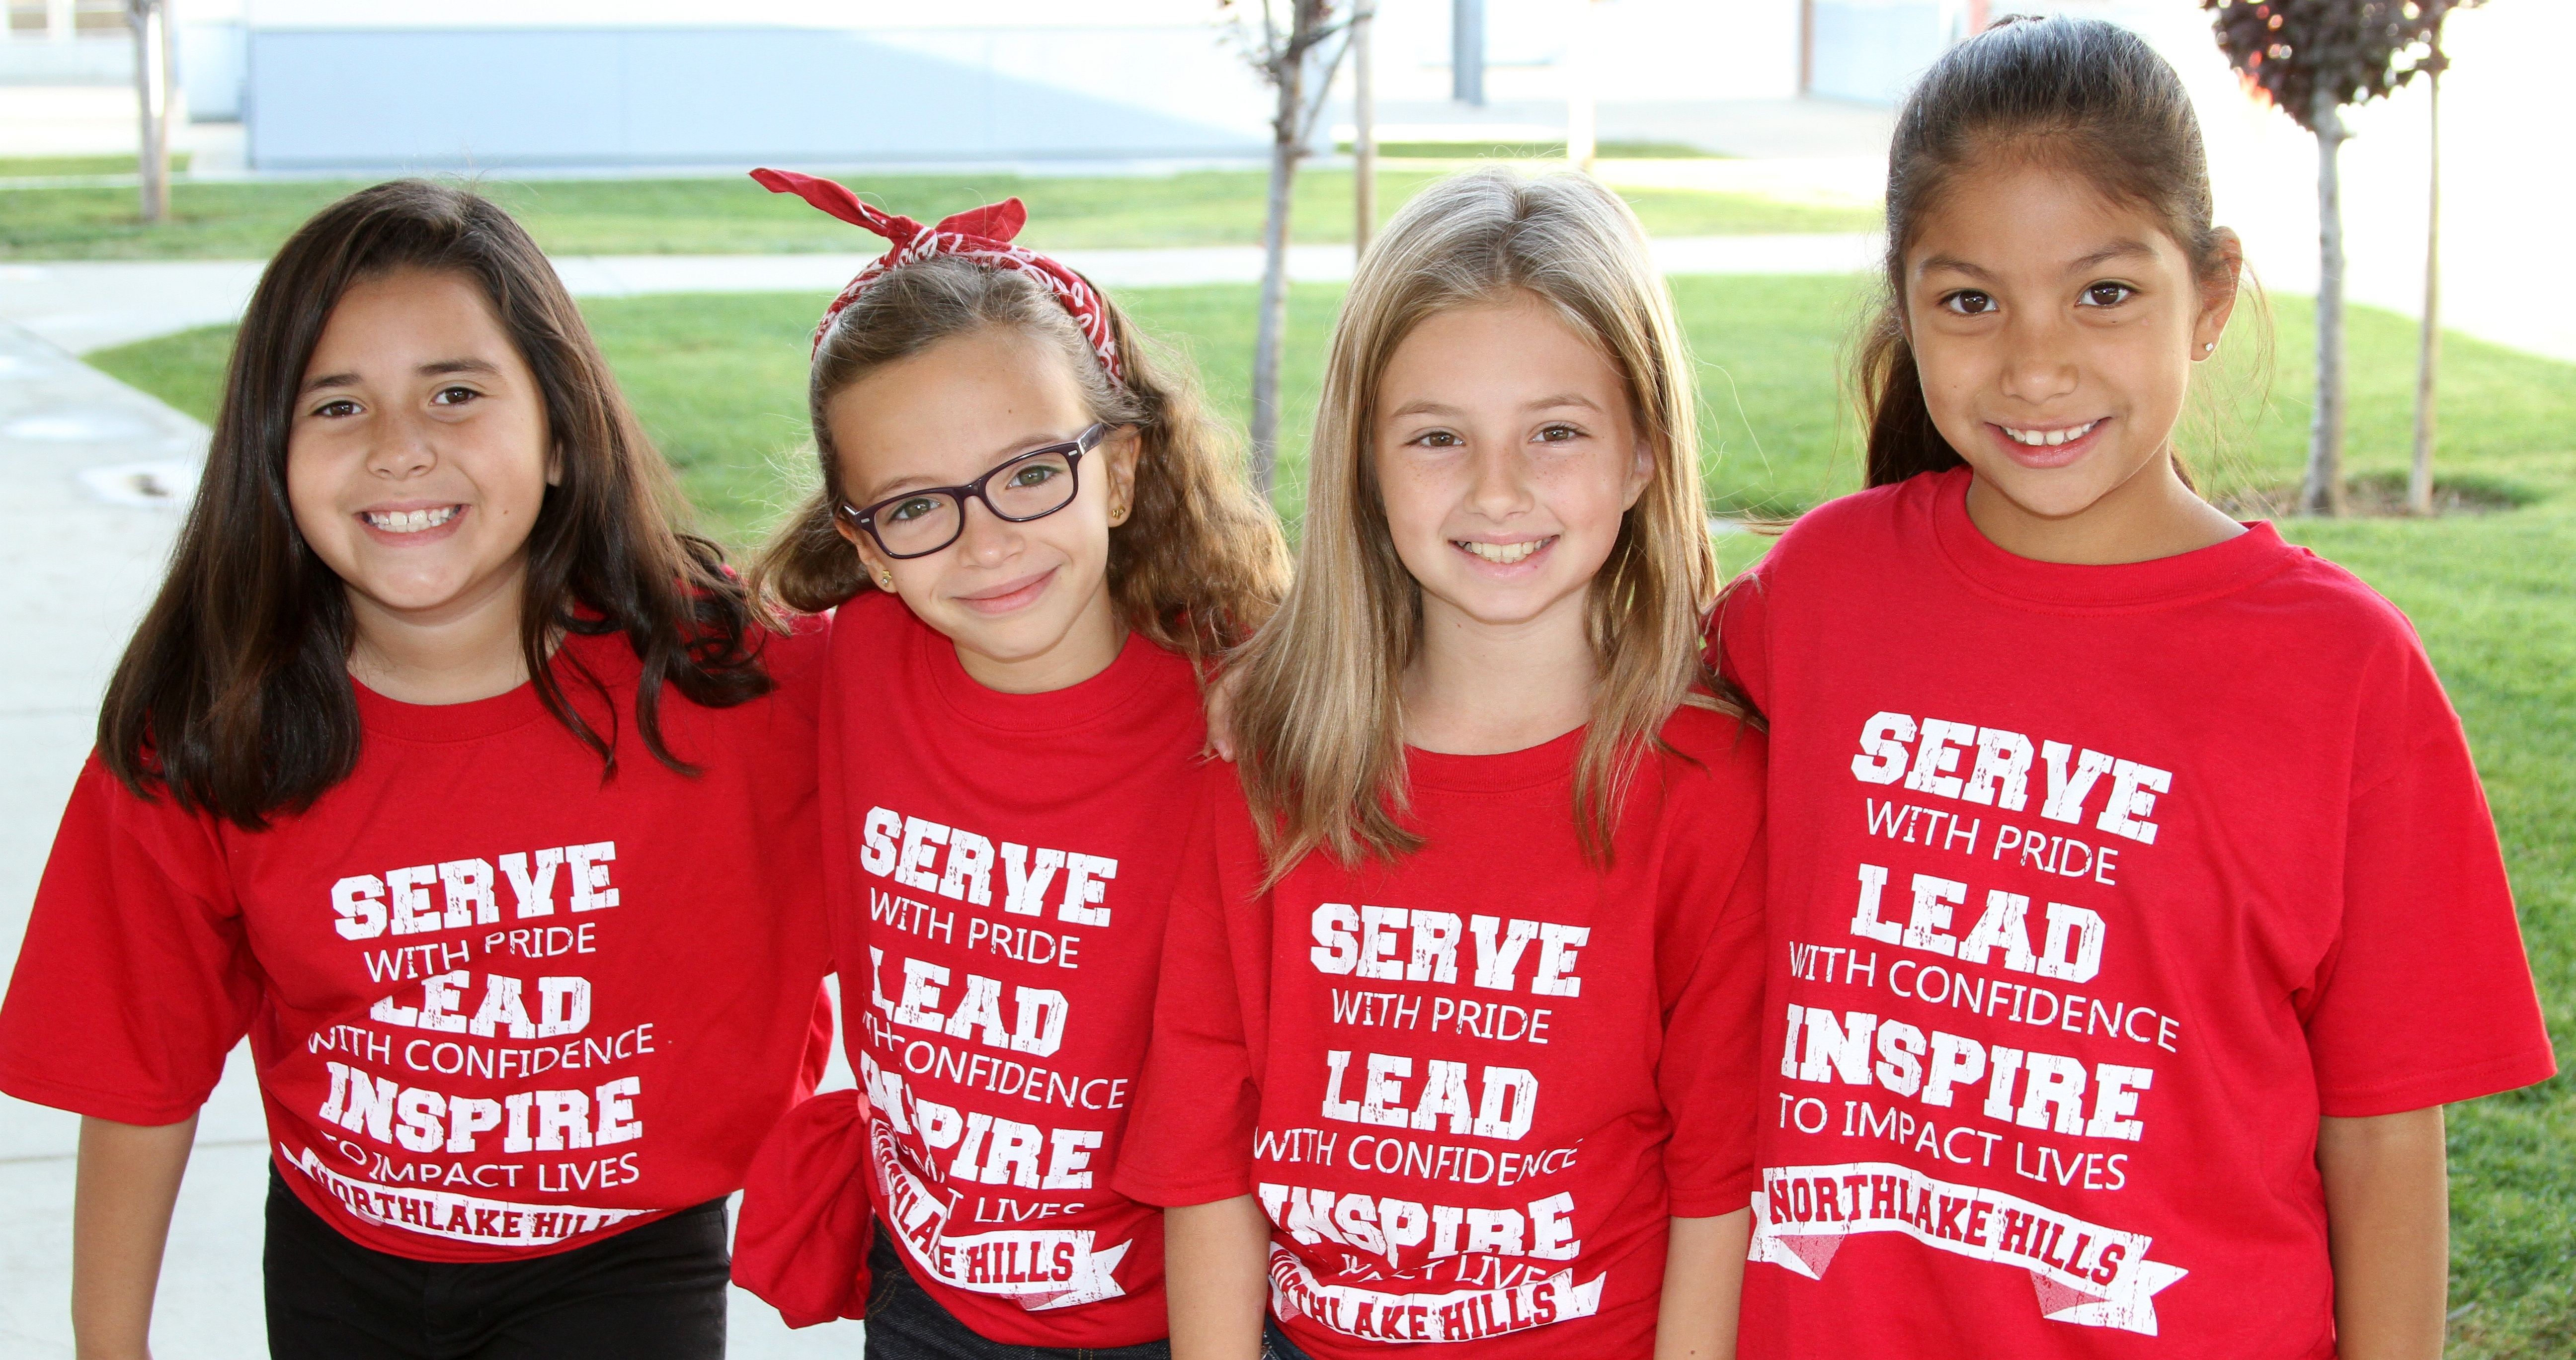 Image of students from Northlake Hills Elementary.